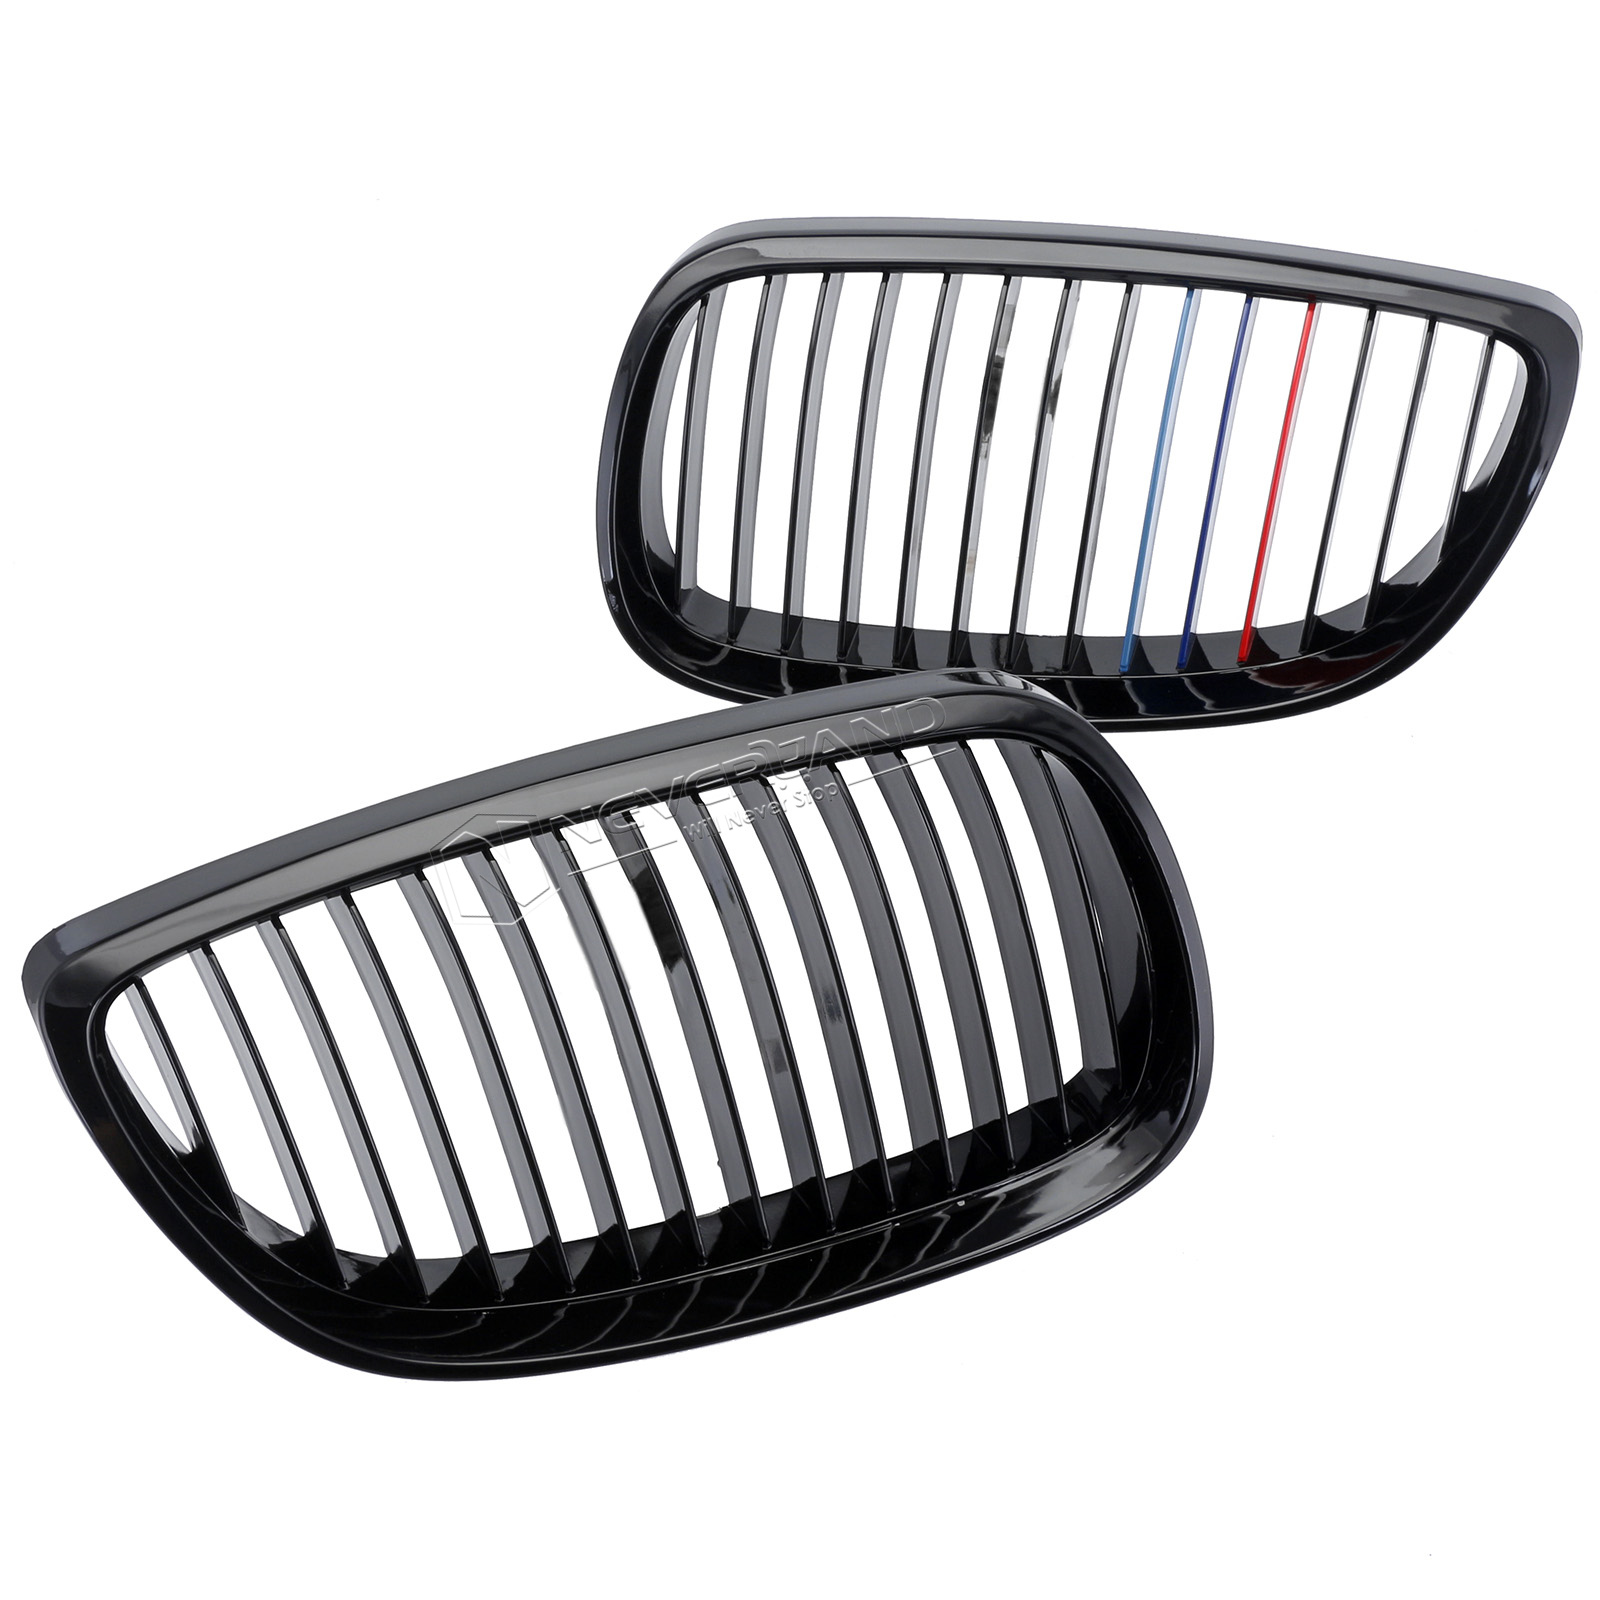 Gloss Black M Color Kidney Grill Grille For Bmw E92 E93 3